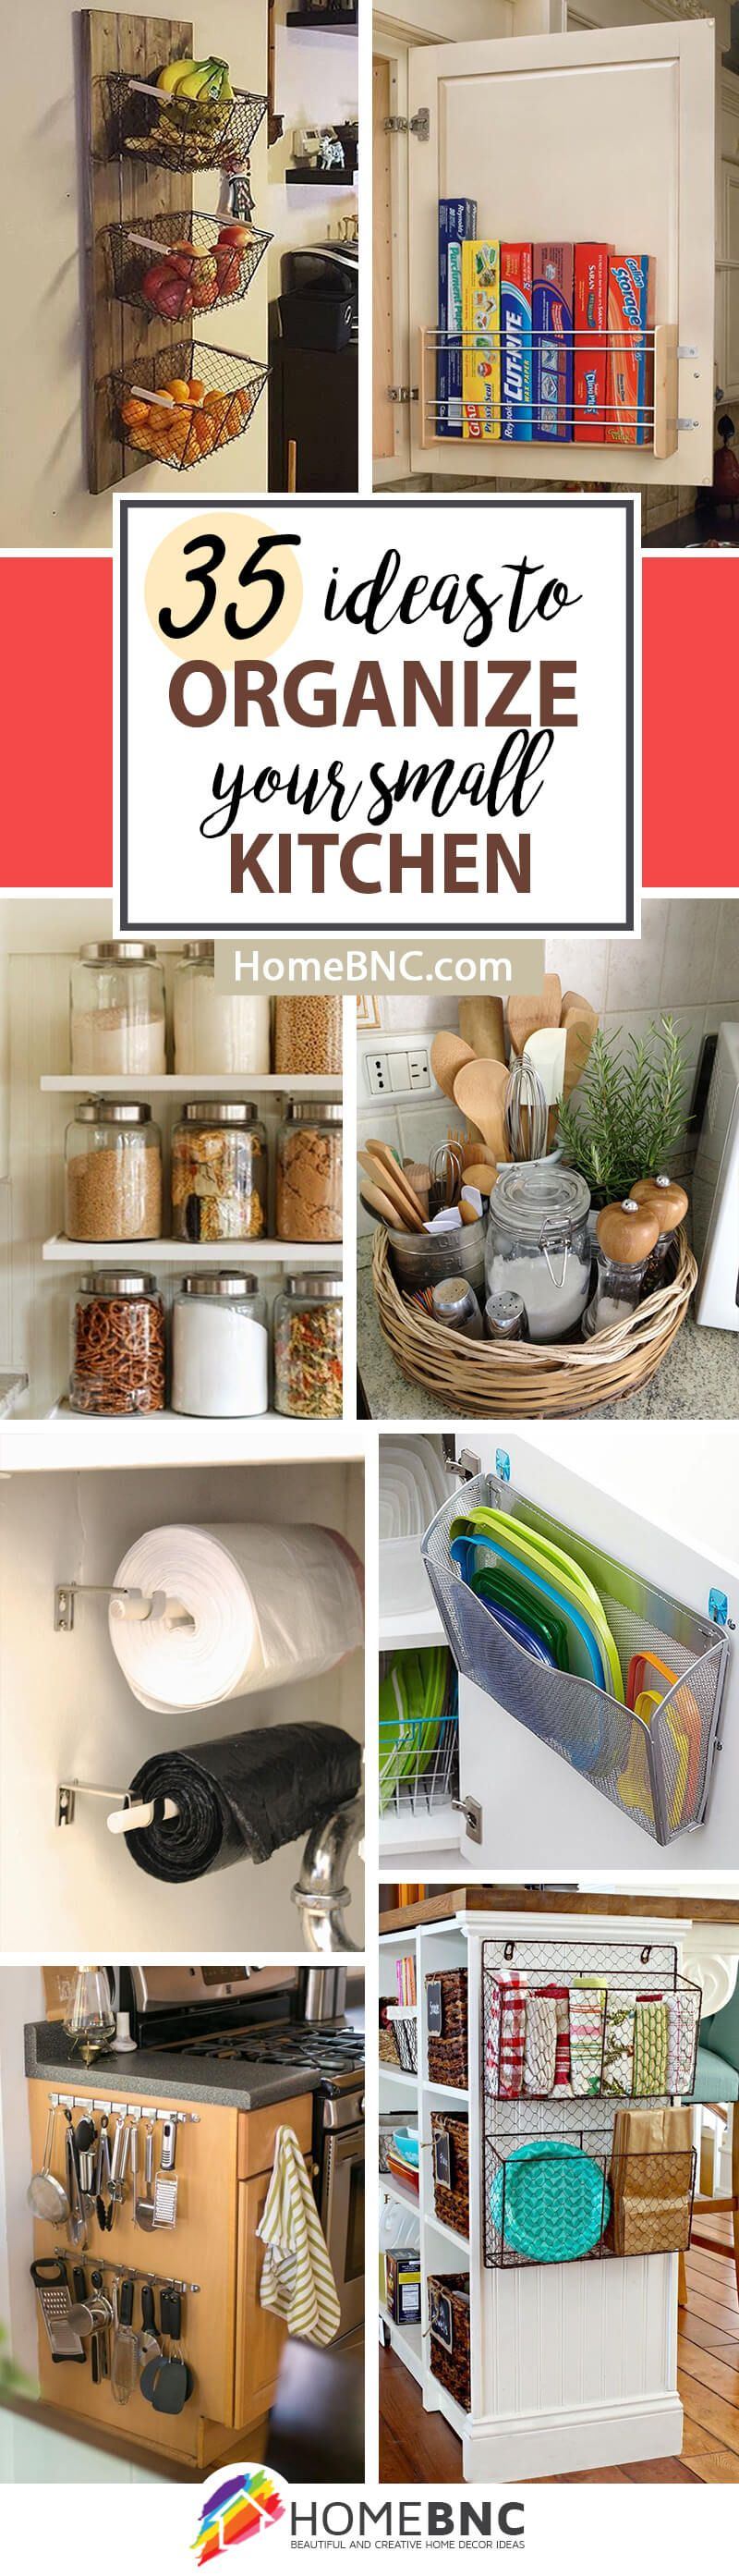 Best 25+ Cheap kitchen storage ideas ideas on Pinterest | Kitchen storage  solutions, Storage for bags and Kitchen cabinet organization